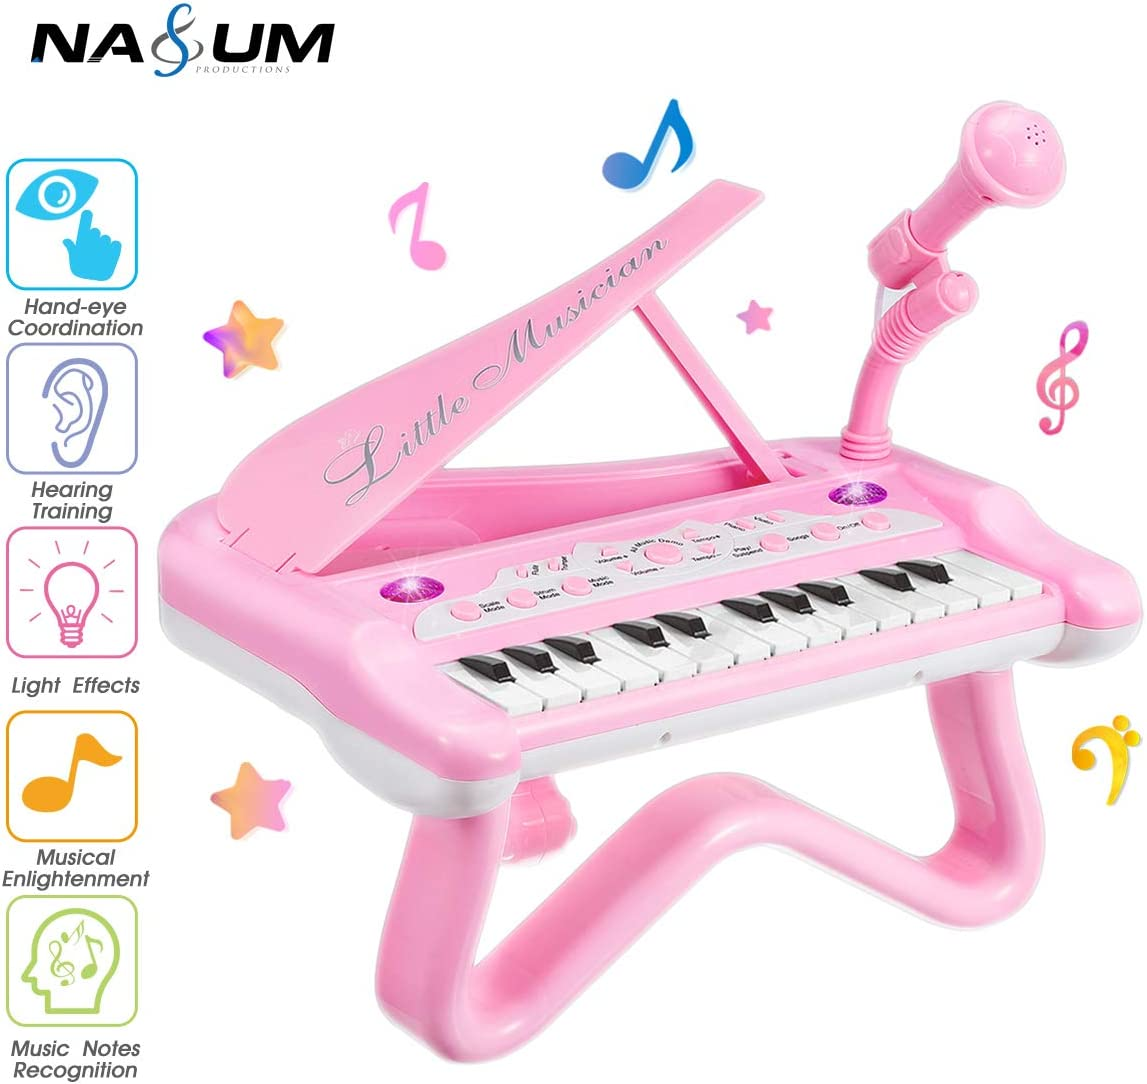 NASUM Piano Keyboard Toy for Kids,25 Keys Toy Piano with Microphone&Music Mode, Best Birthday Gifts for 2 3 4 5 6 Years Old Girls, Educational Multifunctional Musical Toy Piano for Toddlers